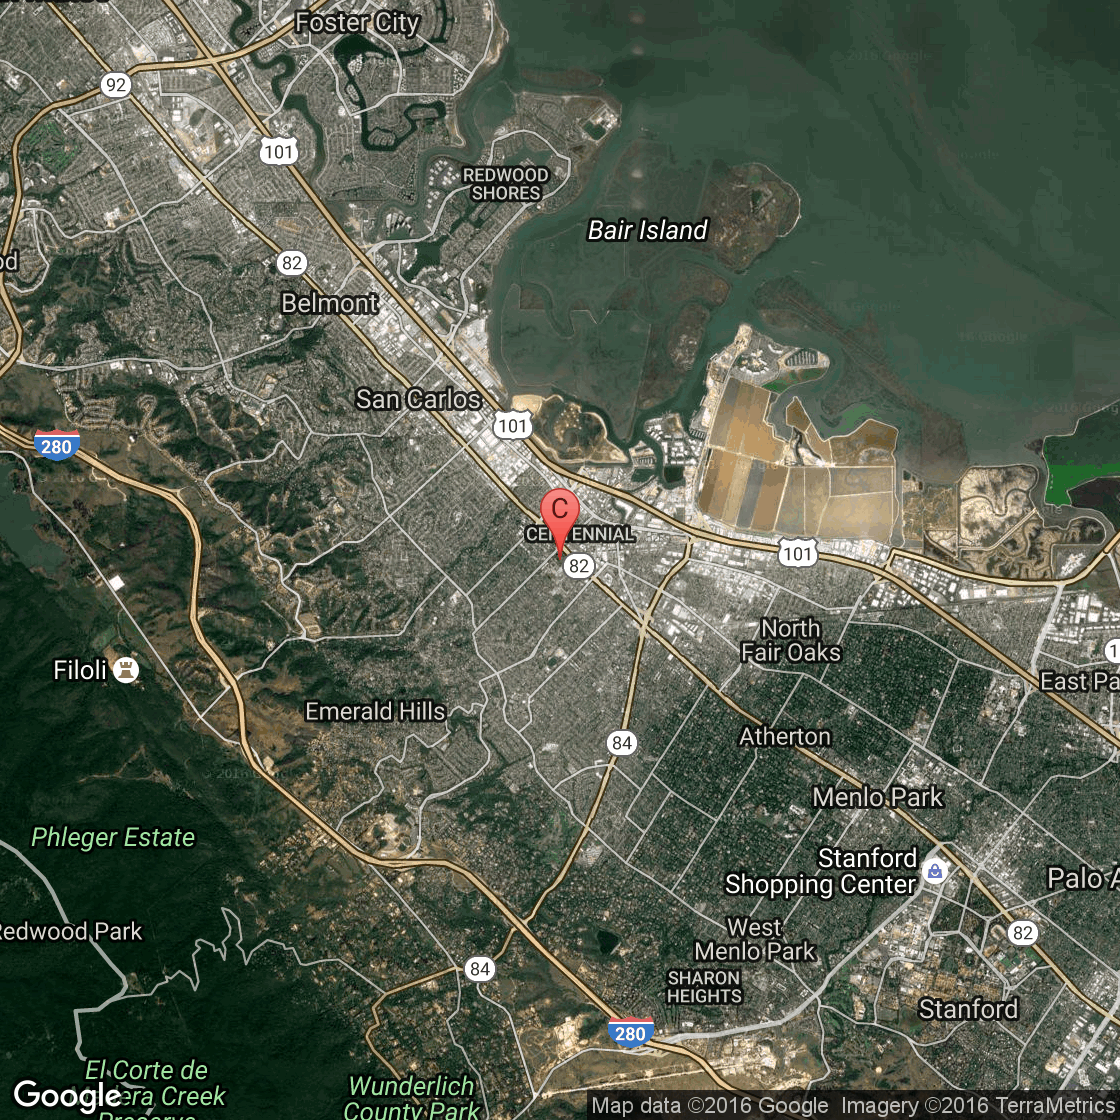 Historical Sites in Redwood City, California | USA Today